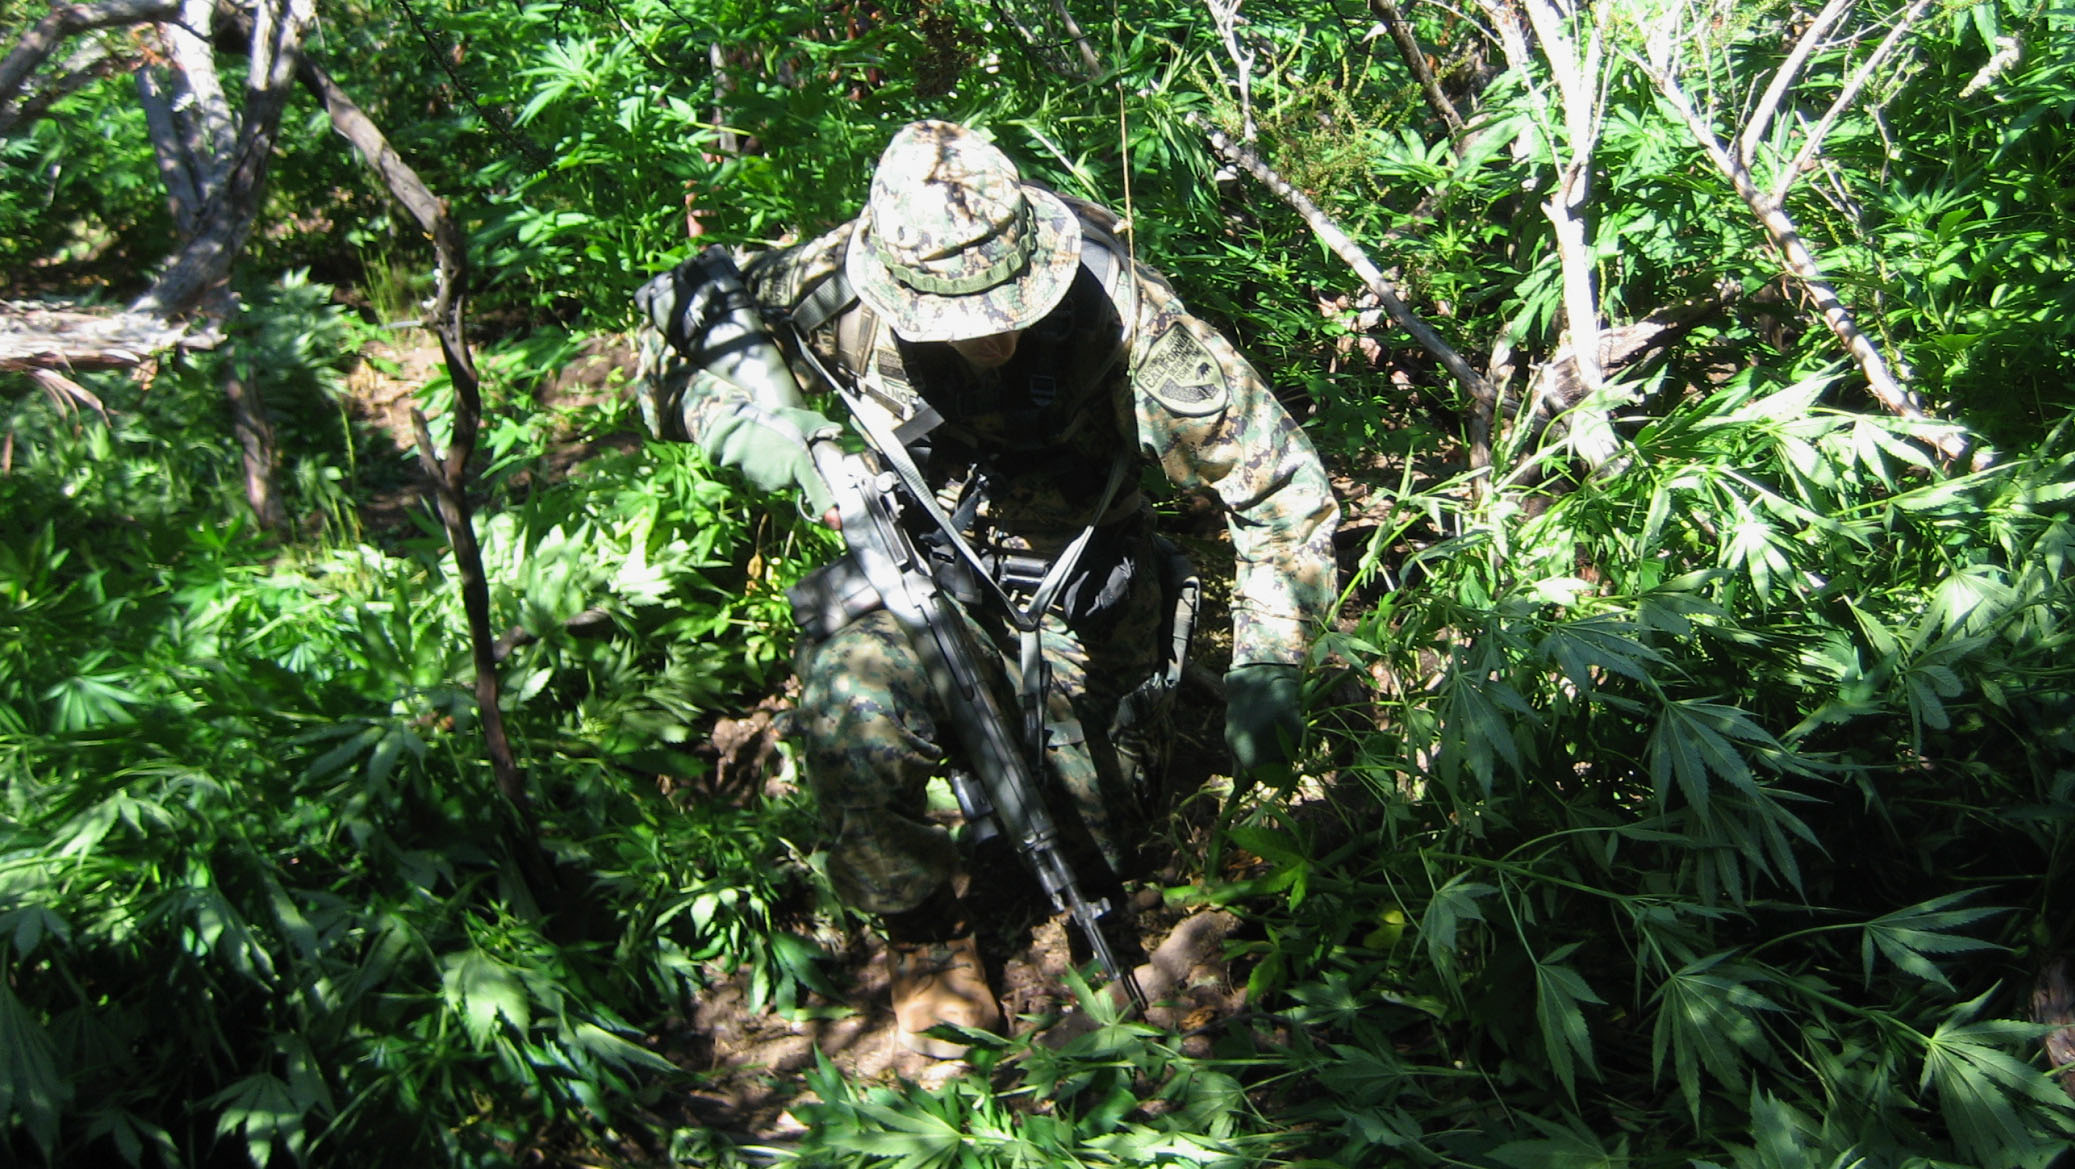 Hunters Continue to Stumble onto Drug Cartel's Illegal Marijuana Grows